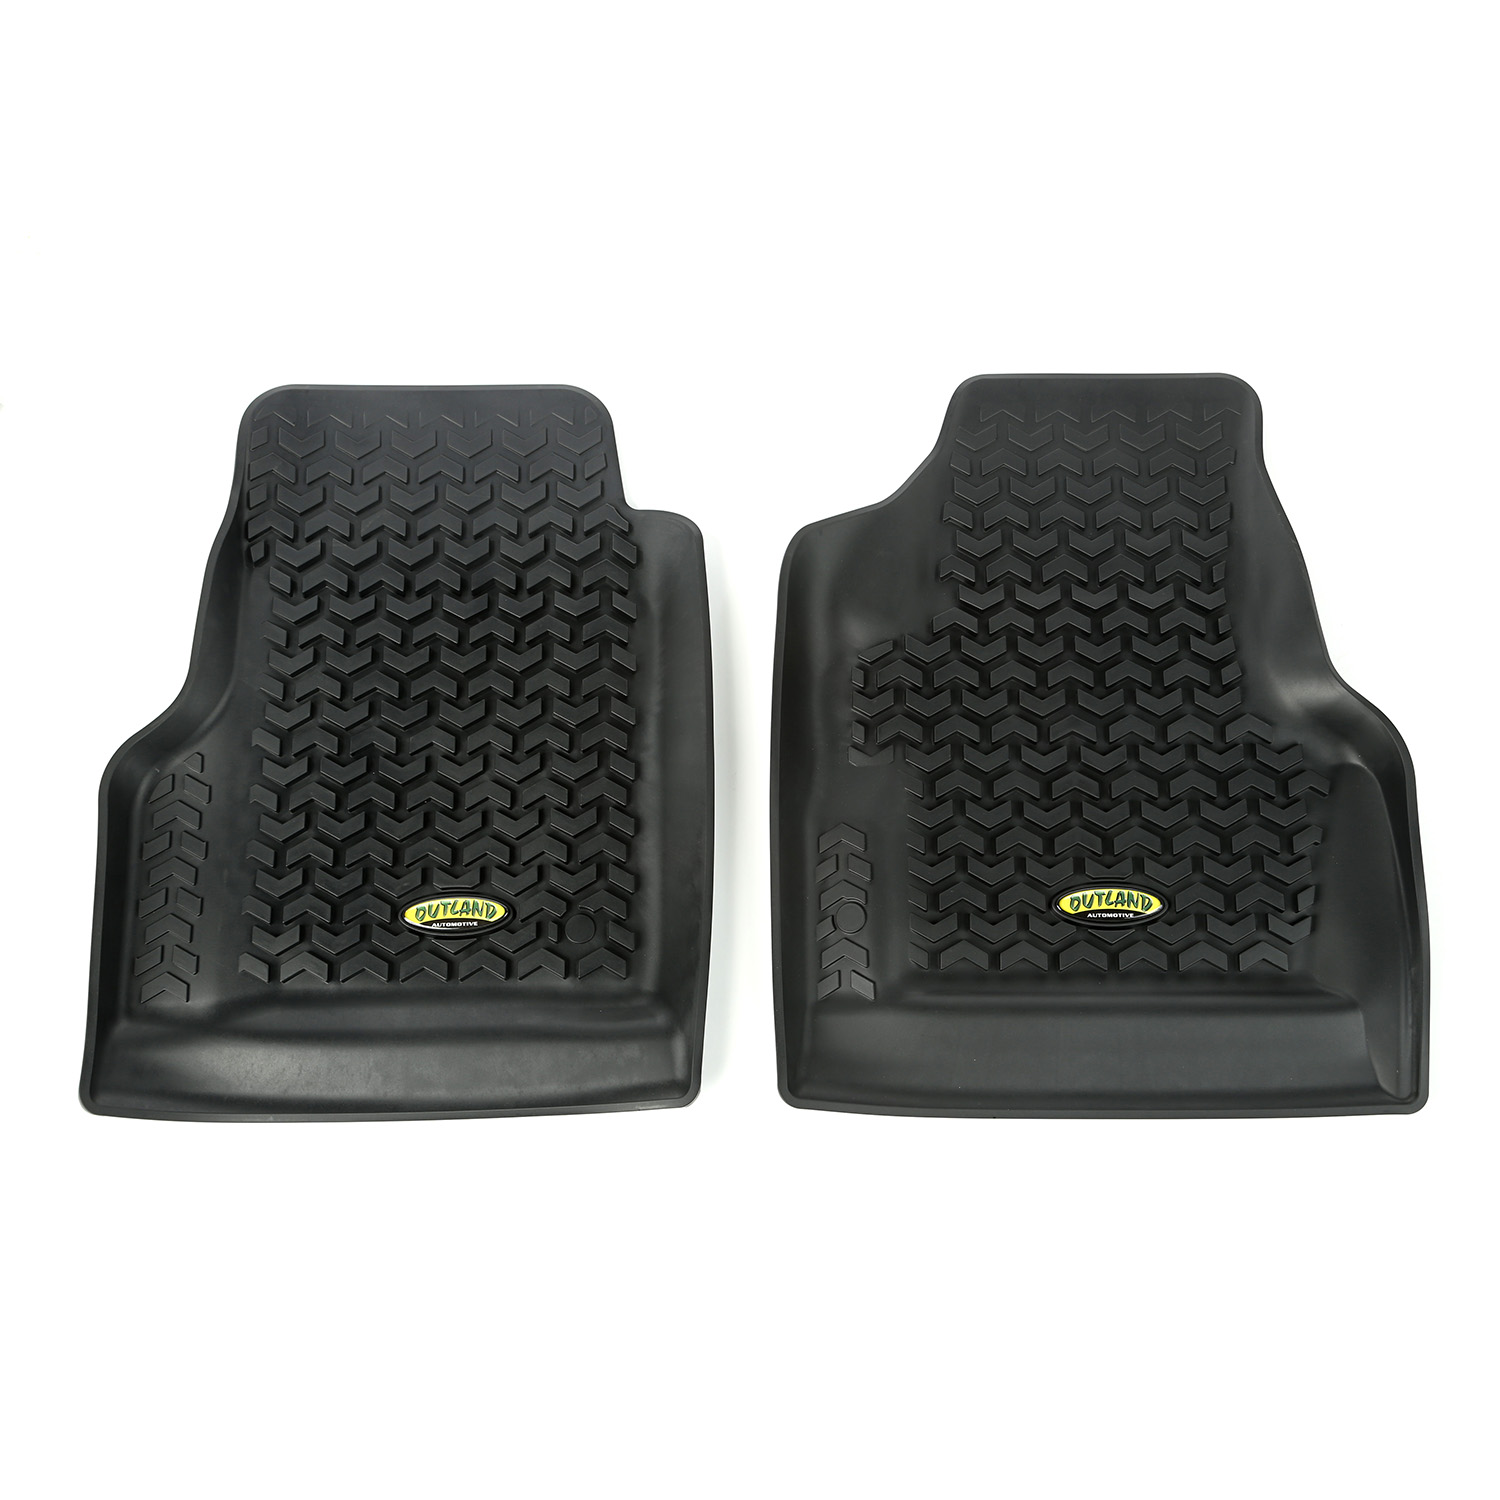 Outland 398298723 Black Front and Rear Floor Liner Kit For Select Ford F-150 Models